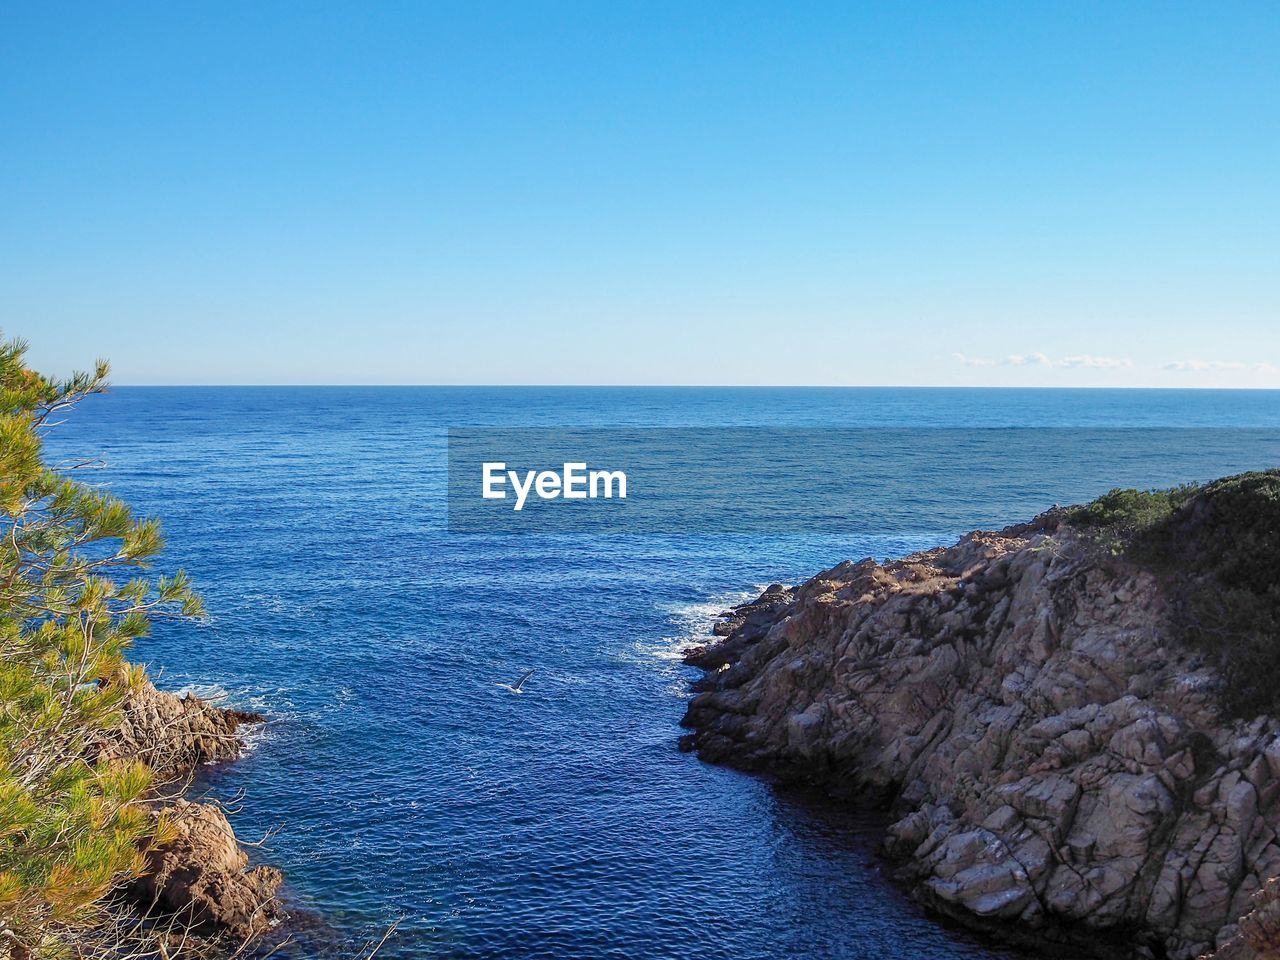 sea, sky, water, scenics - nature, beauty in nature, horizon over water, horizon, blue, tranquility, tranquil scene, copy space, clear sky, nature, no people, day, idyllic, land, rock, non-urban scene, rocky coastline